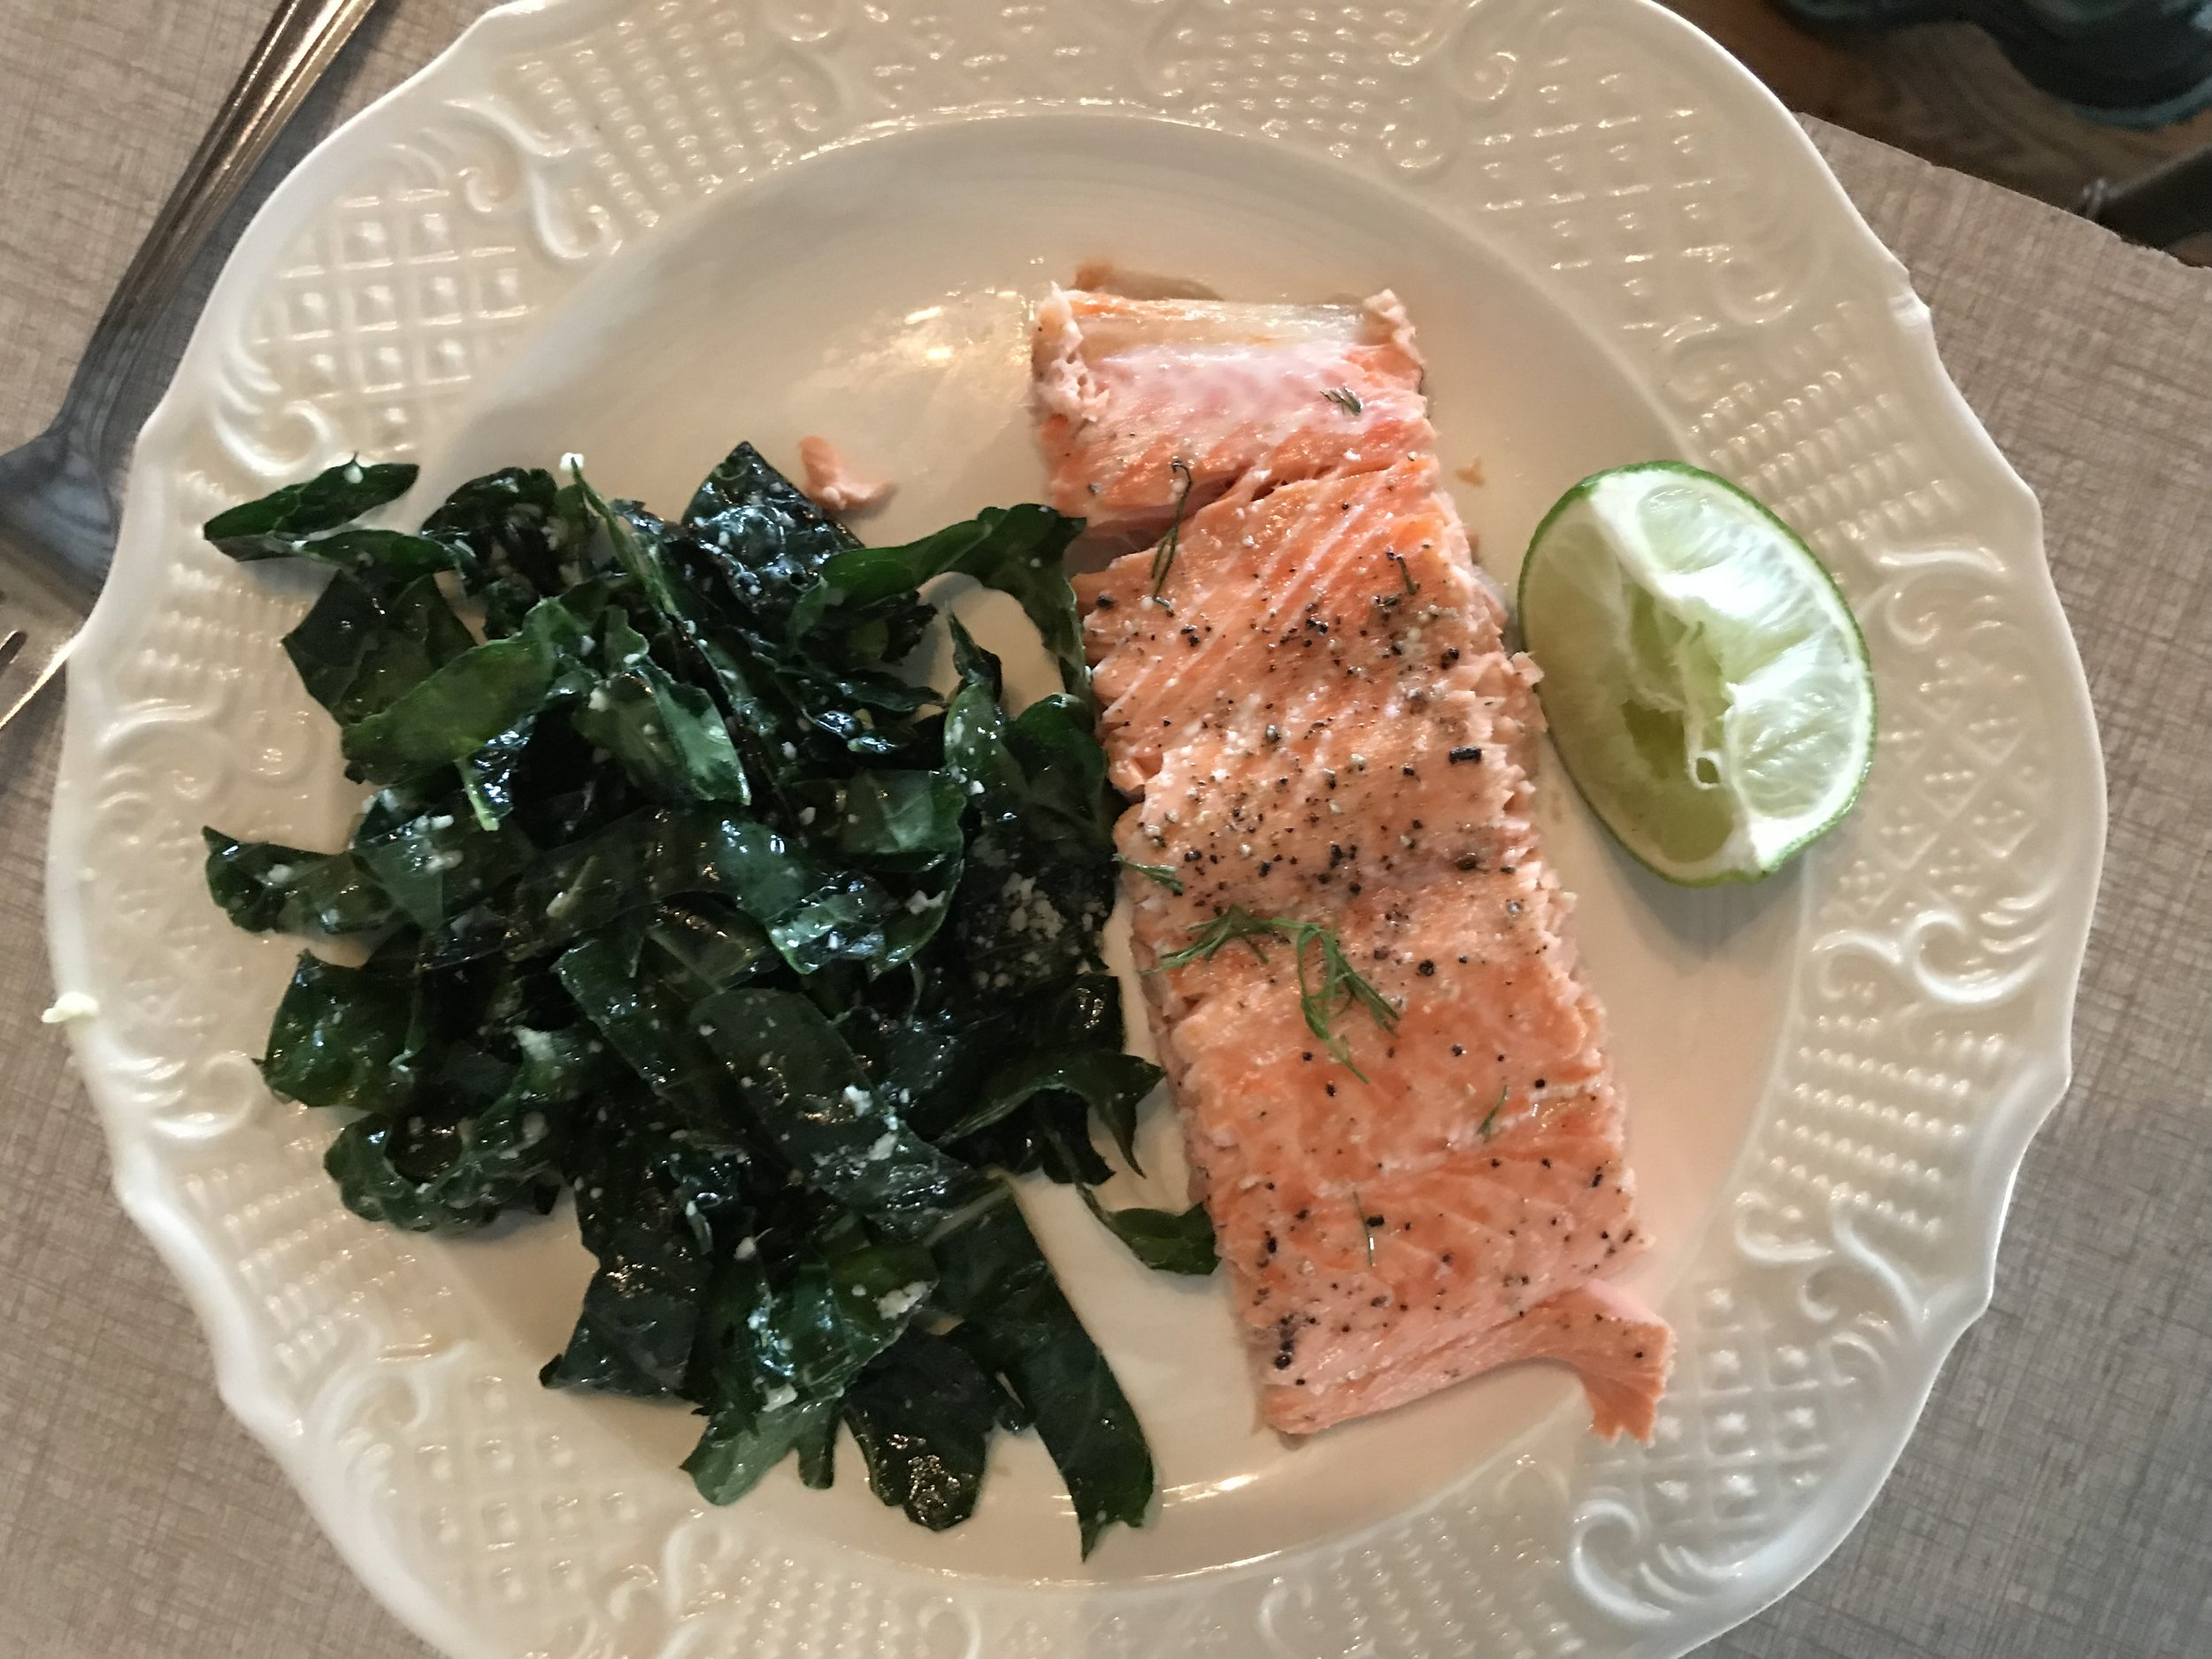 Our lunch: Kale Salad, and Roast VFD Salmon